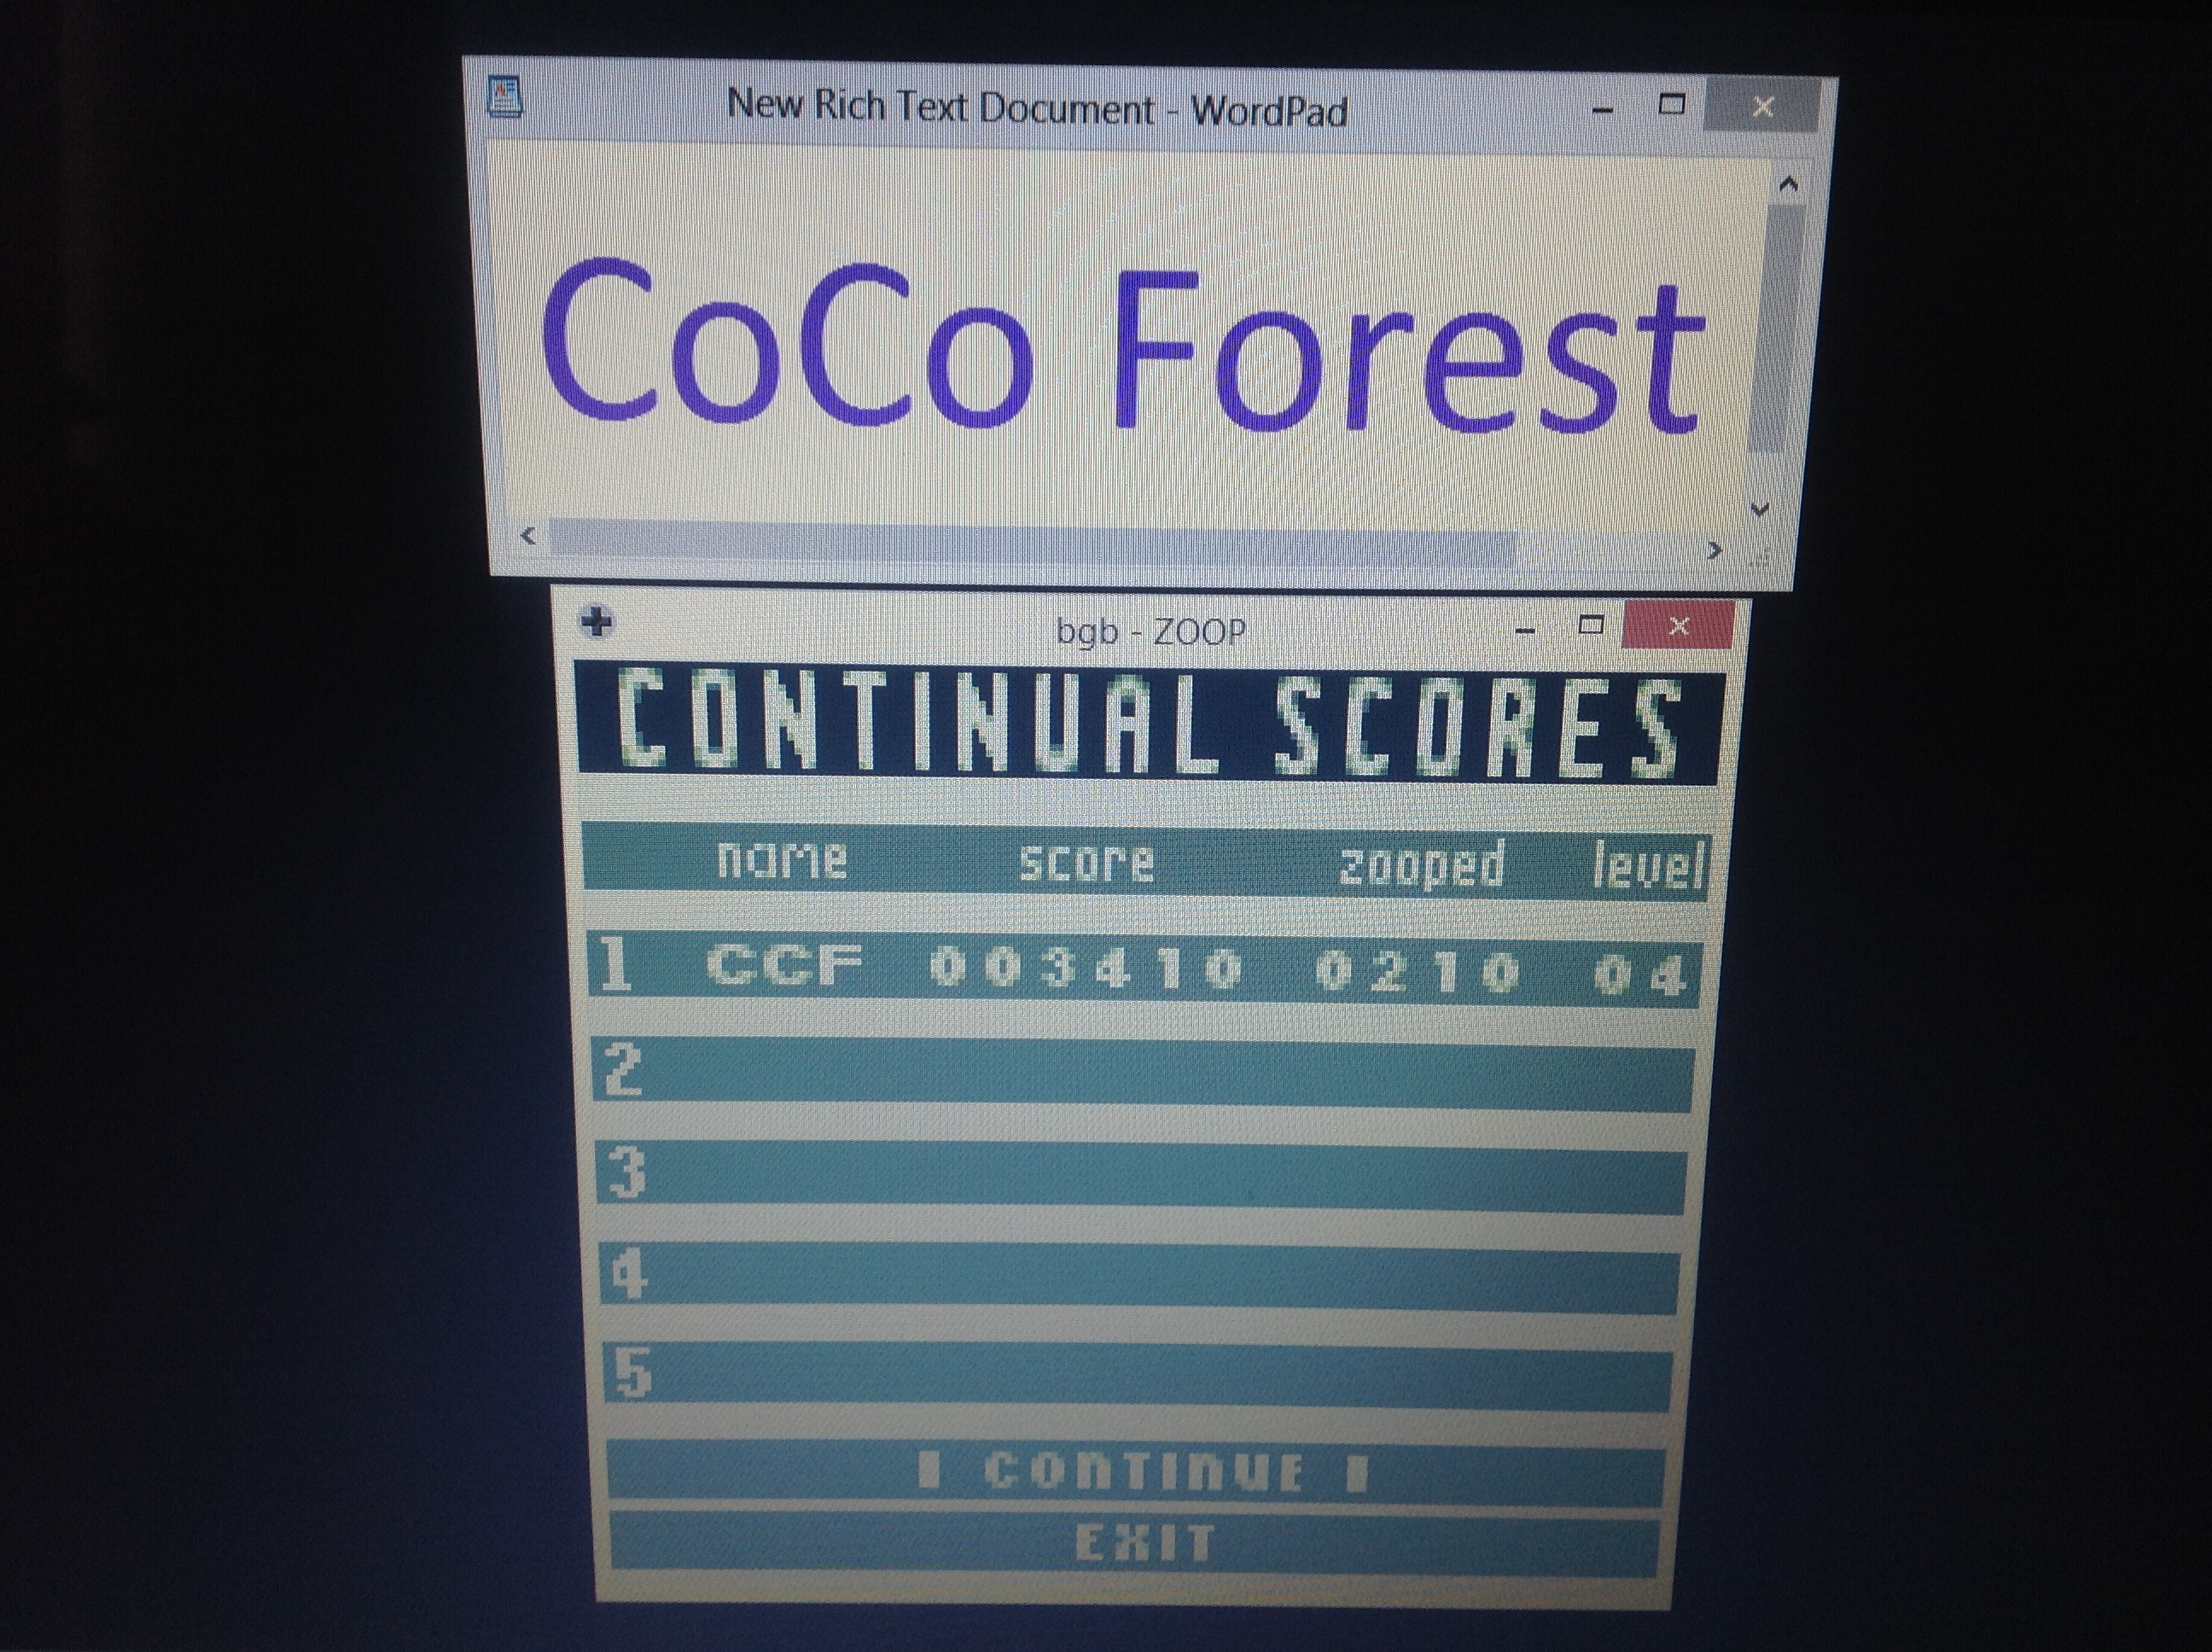 CoCoForest: Zoop [Continual Mode] (Game Boy Emulated) 3,410 points on 2018-10-01 12:08:45